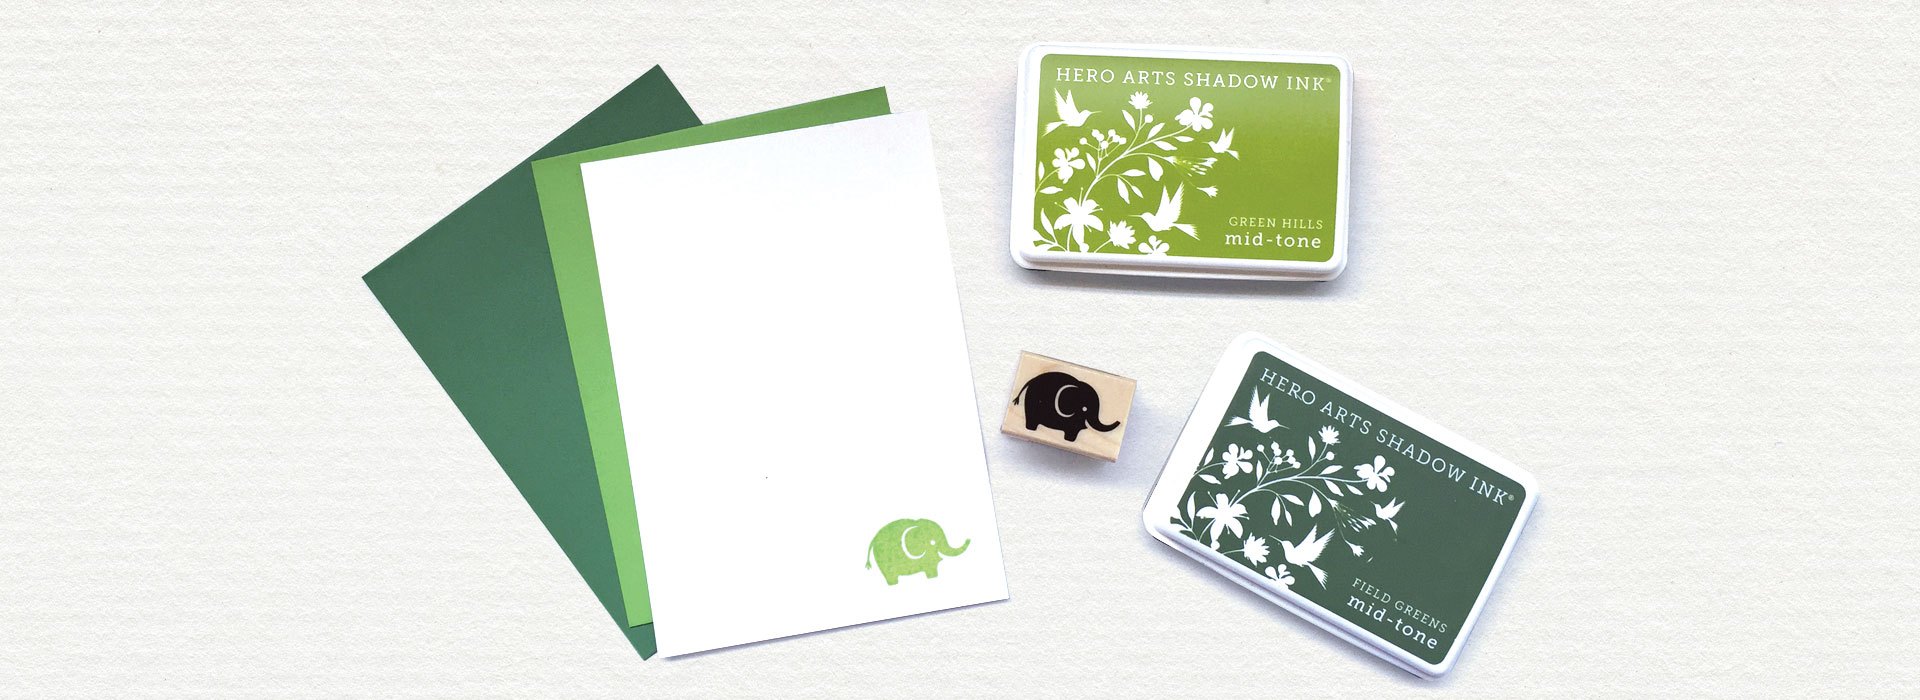 Hero Arts Stamps Ink Pads Die Cutting